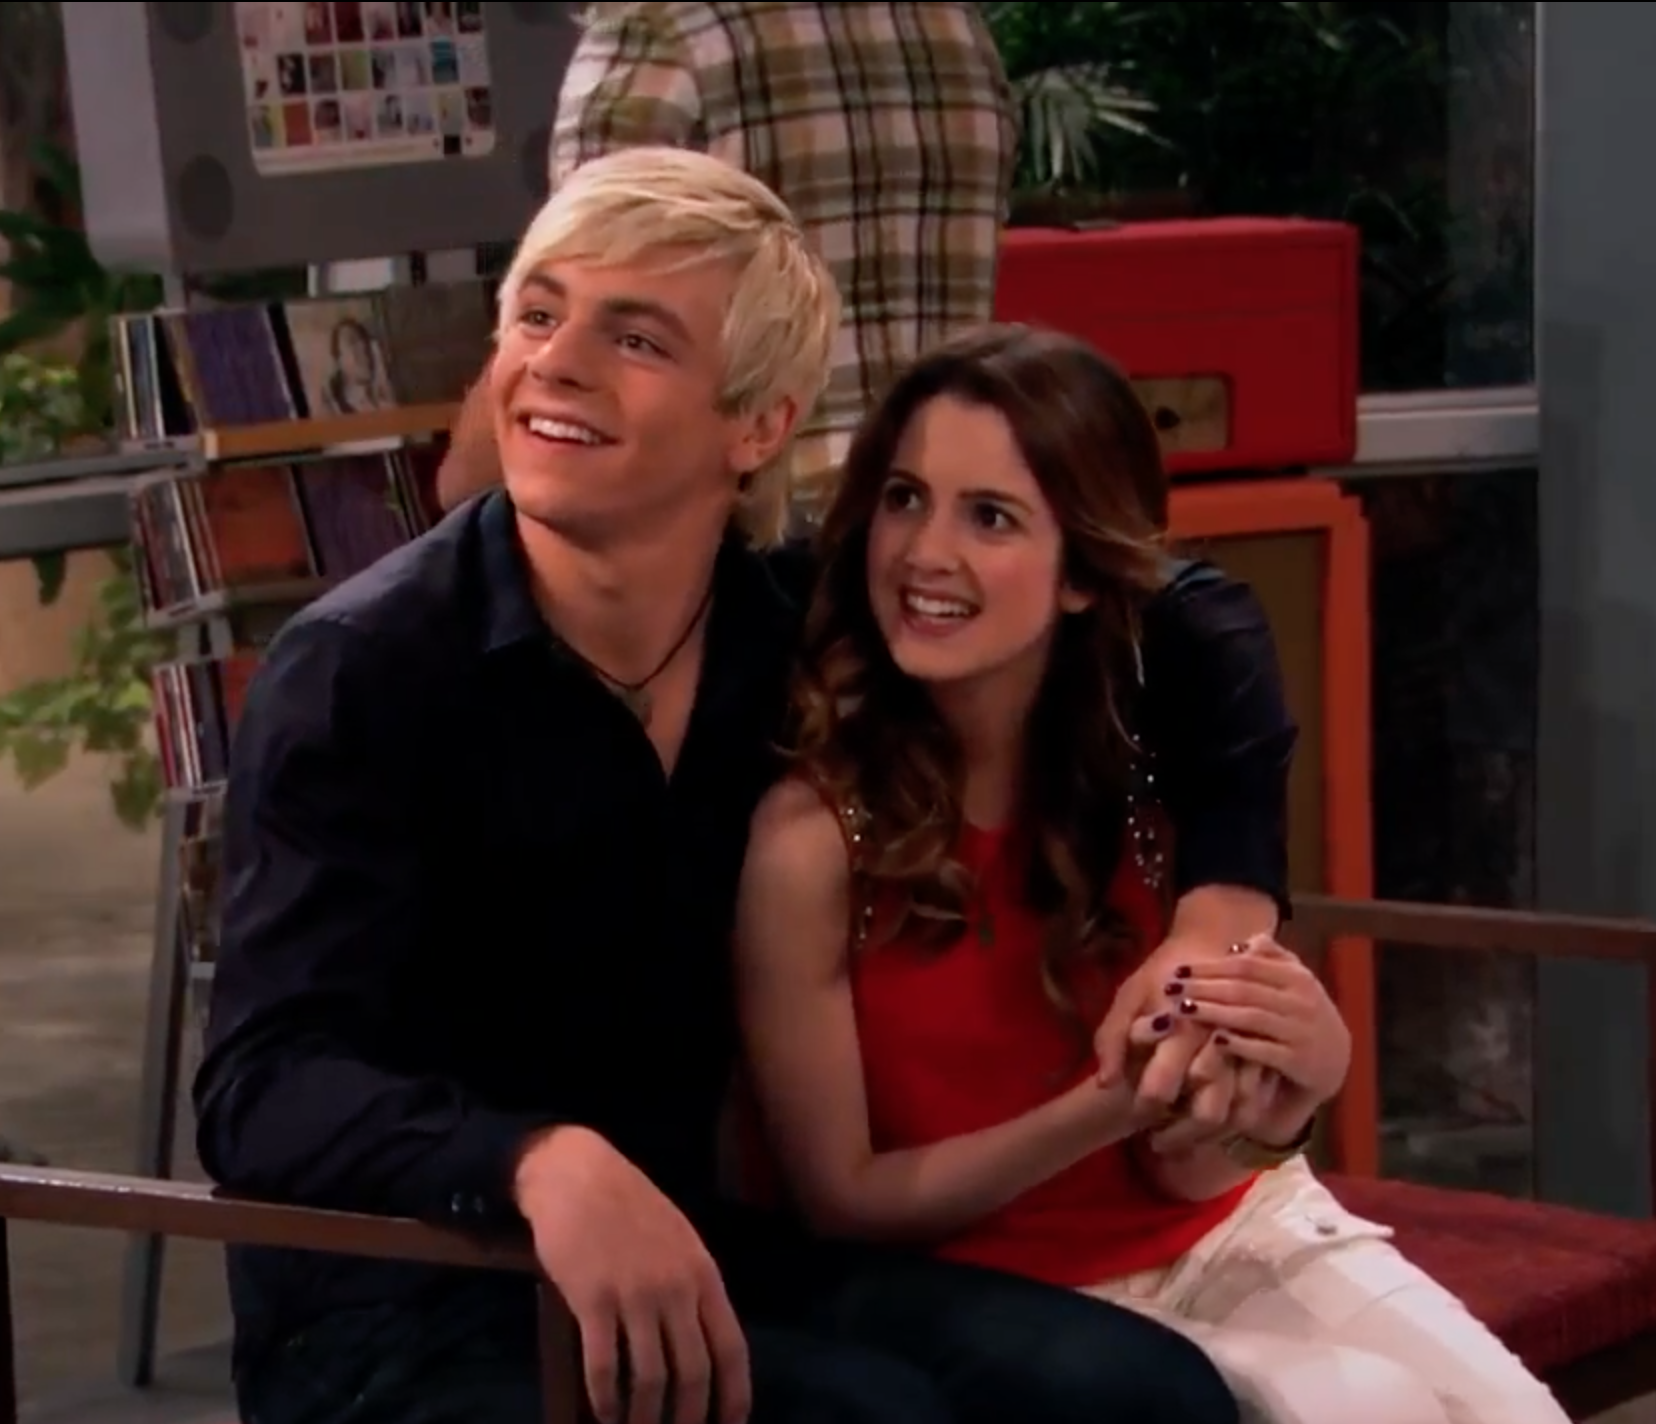 Is austin and ally really hookup